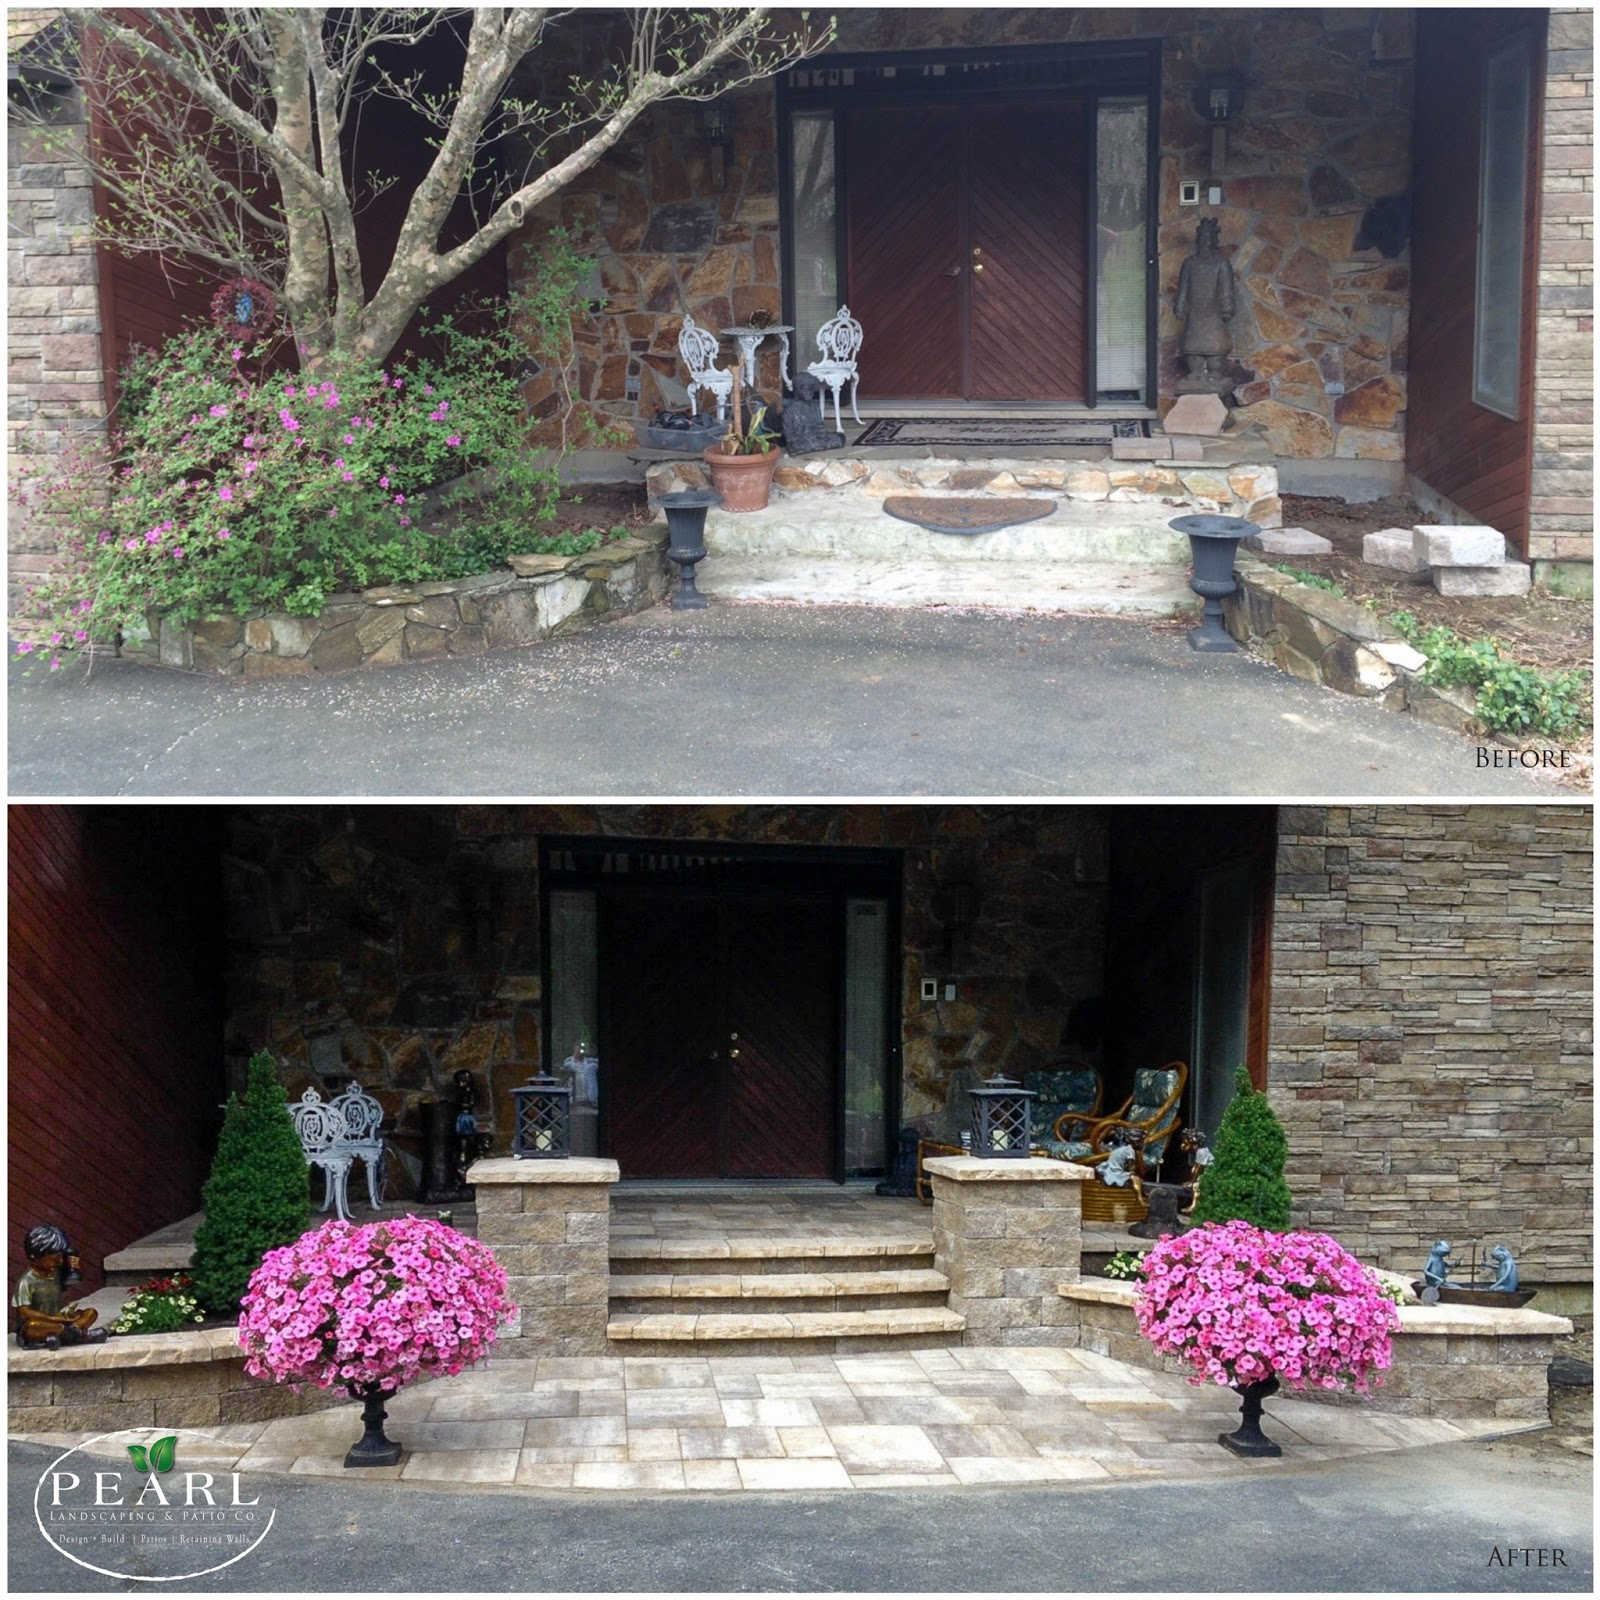 Pearl Landscaping & Patio Company